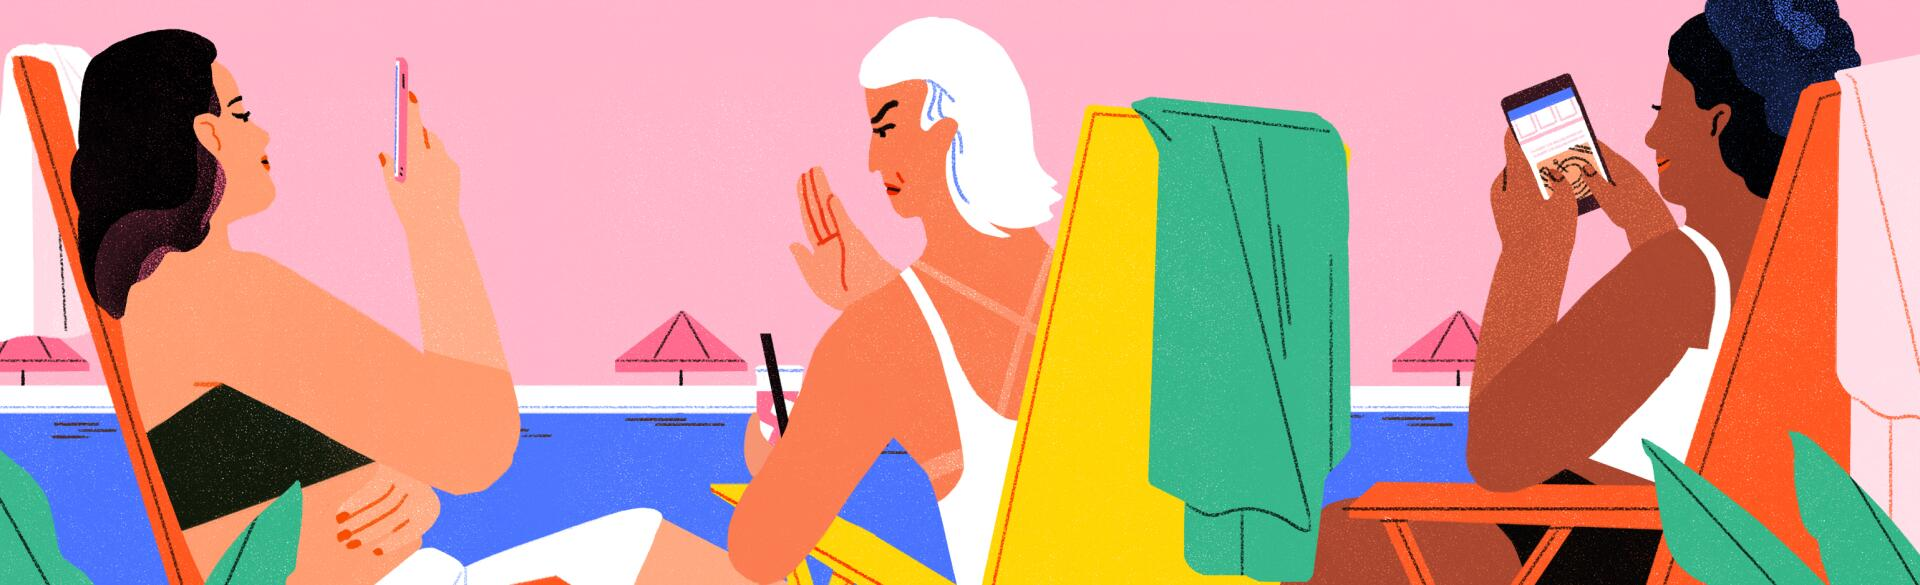 illustration of women sitting at the beach one lady ranting the others on their phones